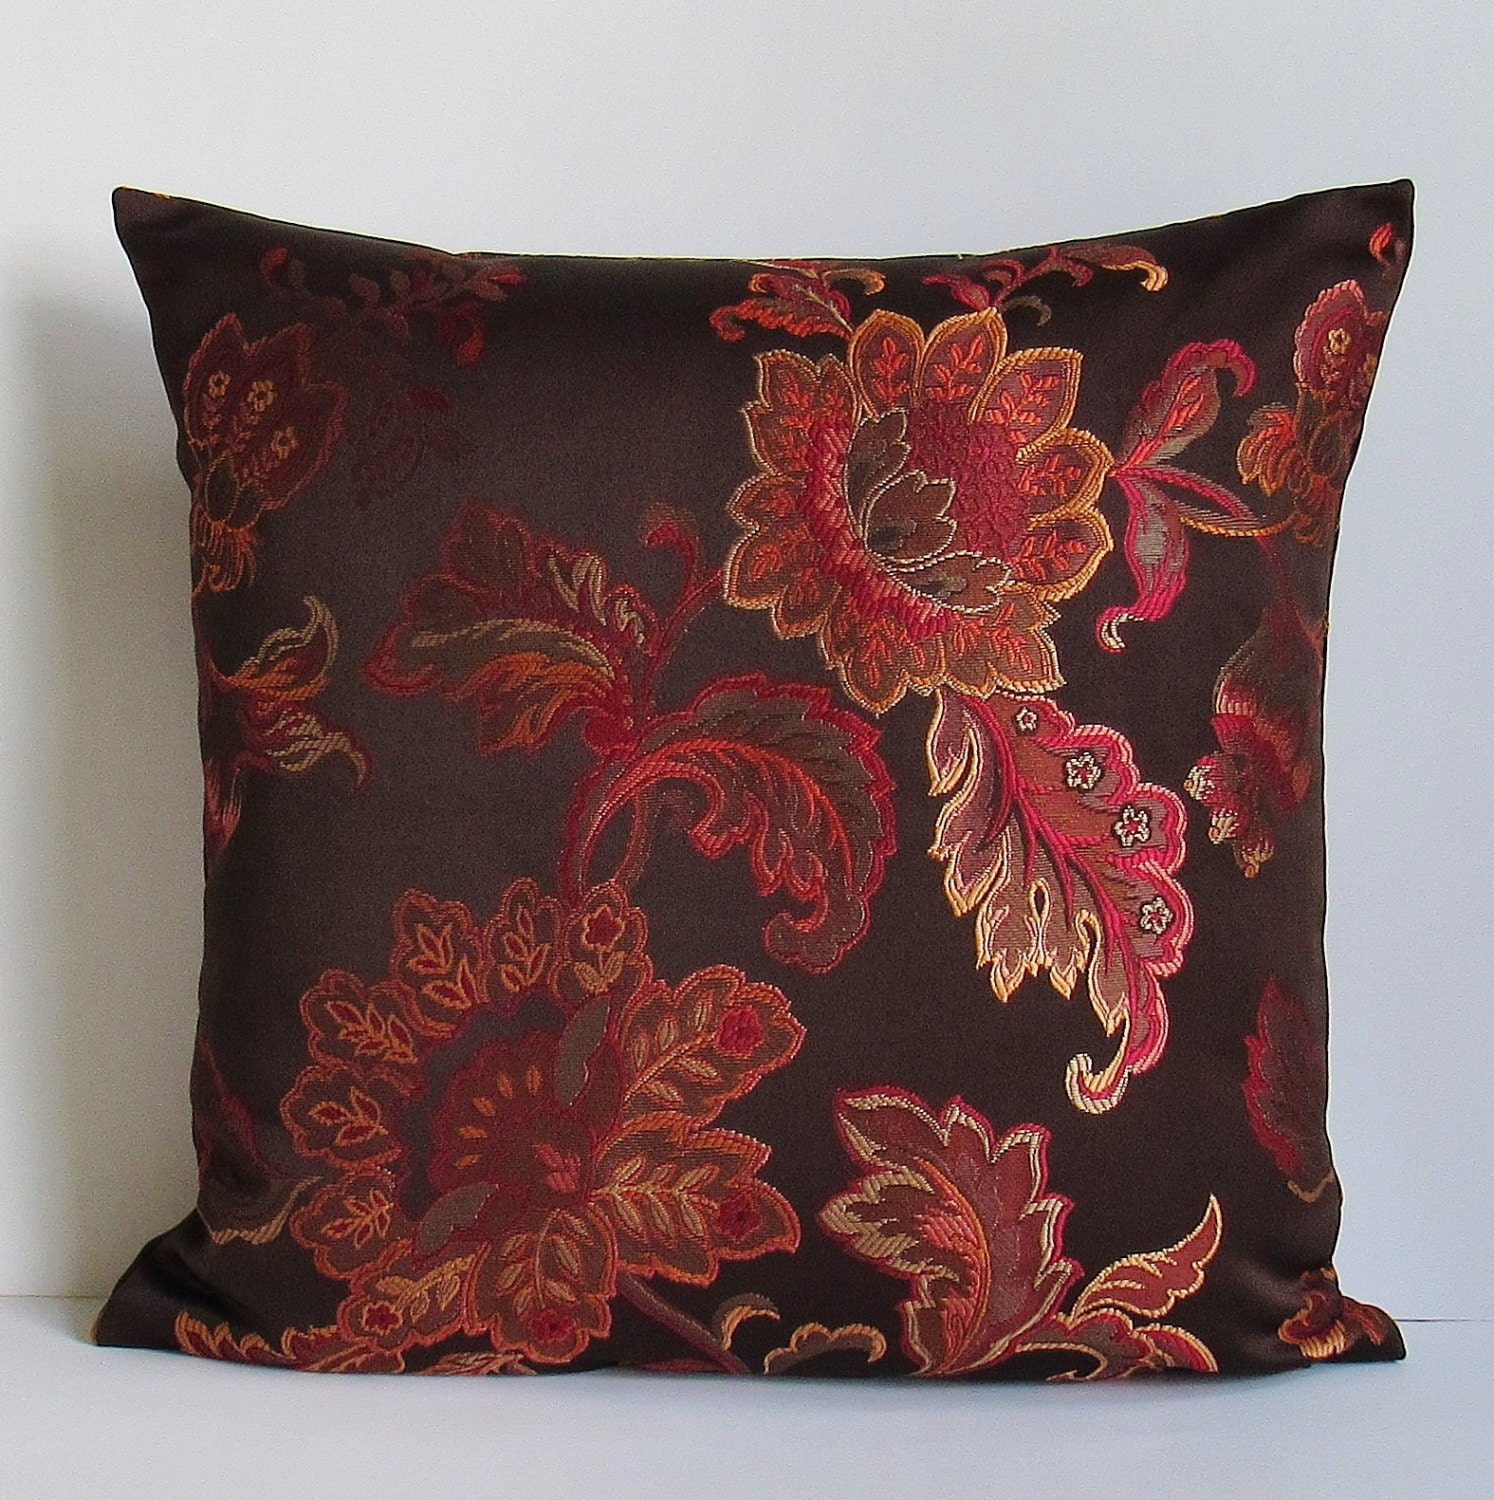 Brown Floral Pillow Cover Coral Rust Orange Red Decorative